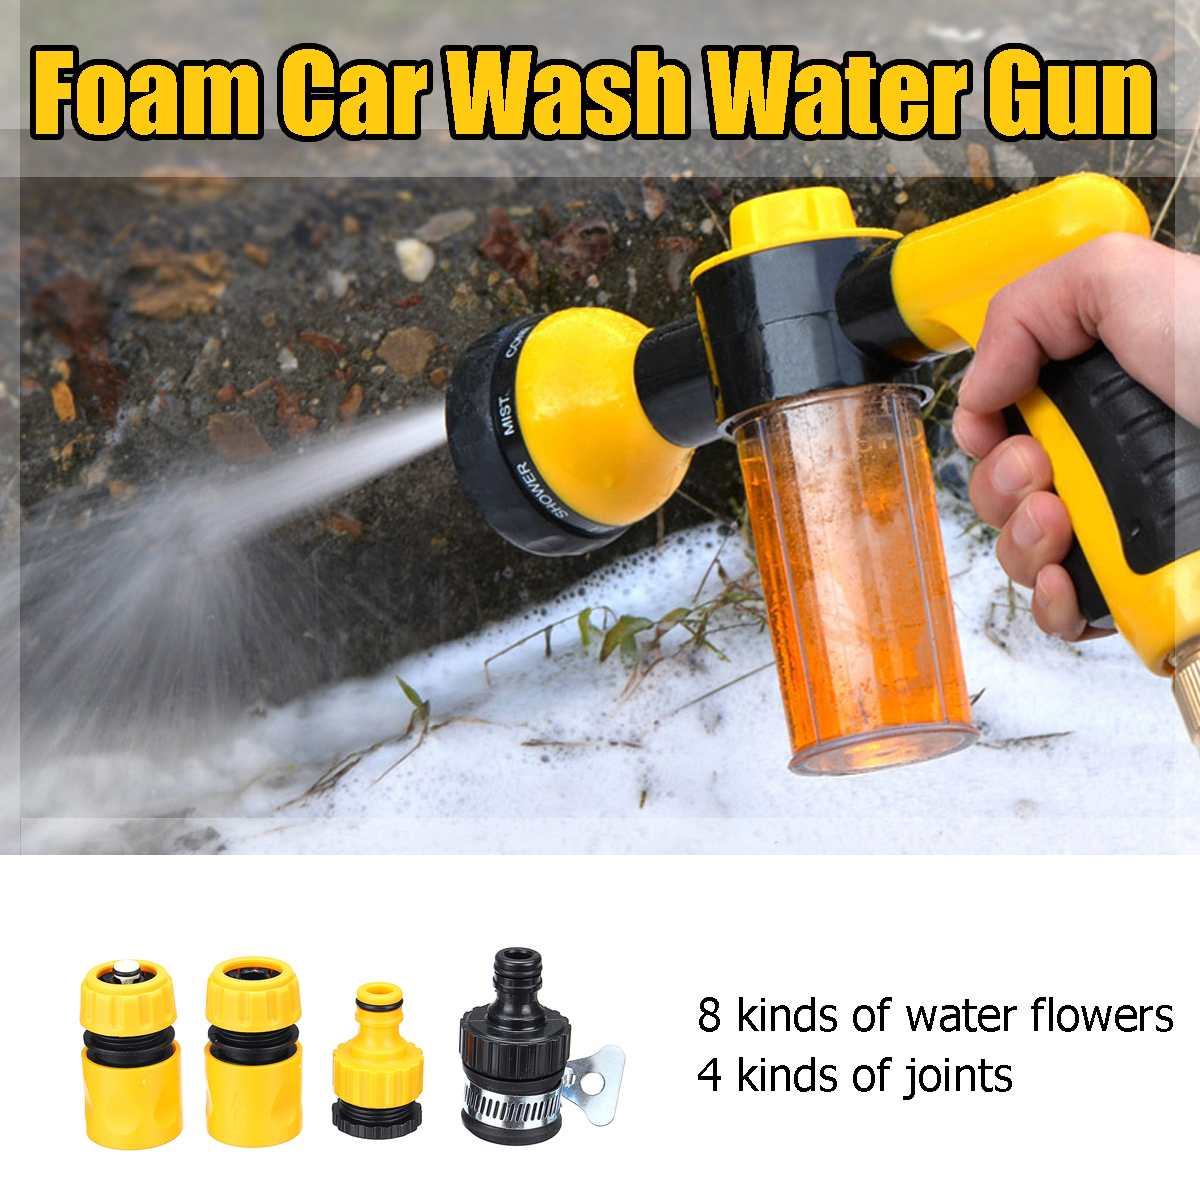 High Pressure Multifunction 8 In 1 Jet Spray G-un Soap Dispenser Hose Nozzle Car Wash Cleaning Tool Garden Watering